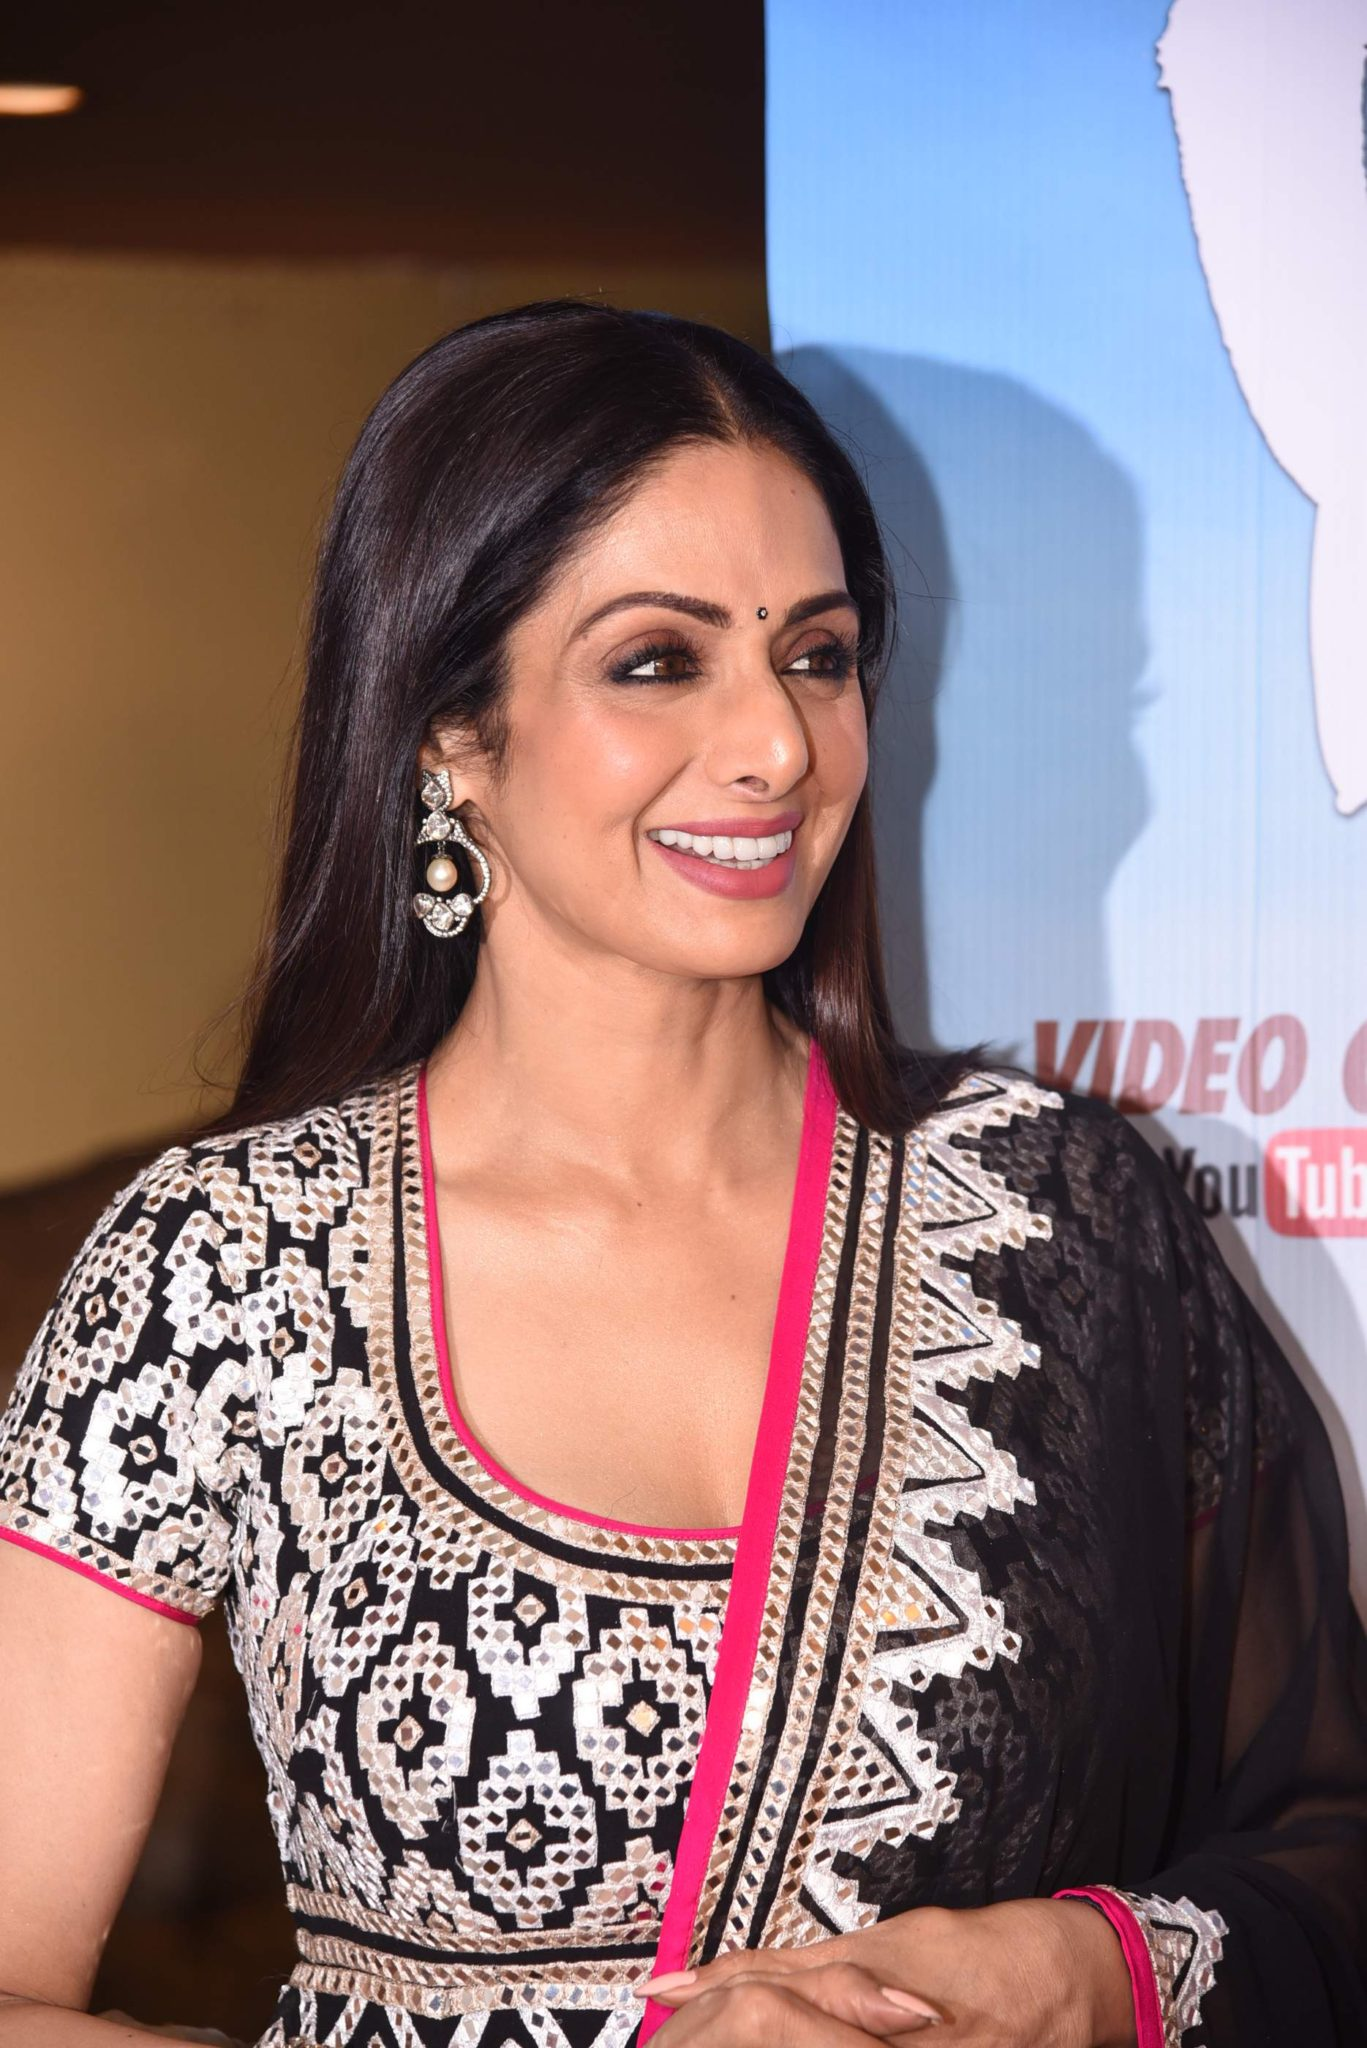 sridevi Photo Stills Of Beautiful Sridevi From 'Kabhi Yaadon Mein' Event Sridevi TSeries 47